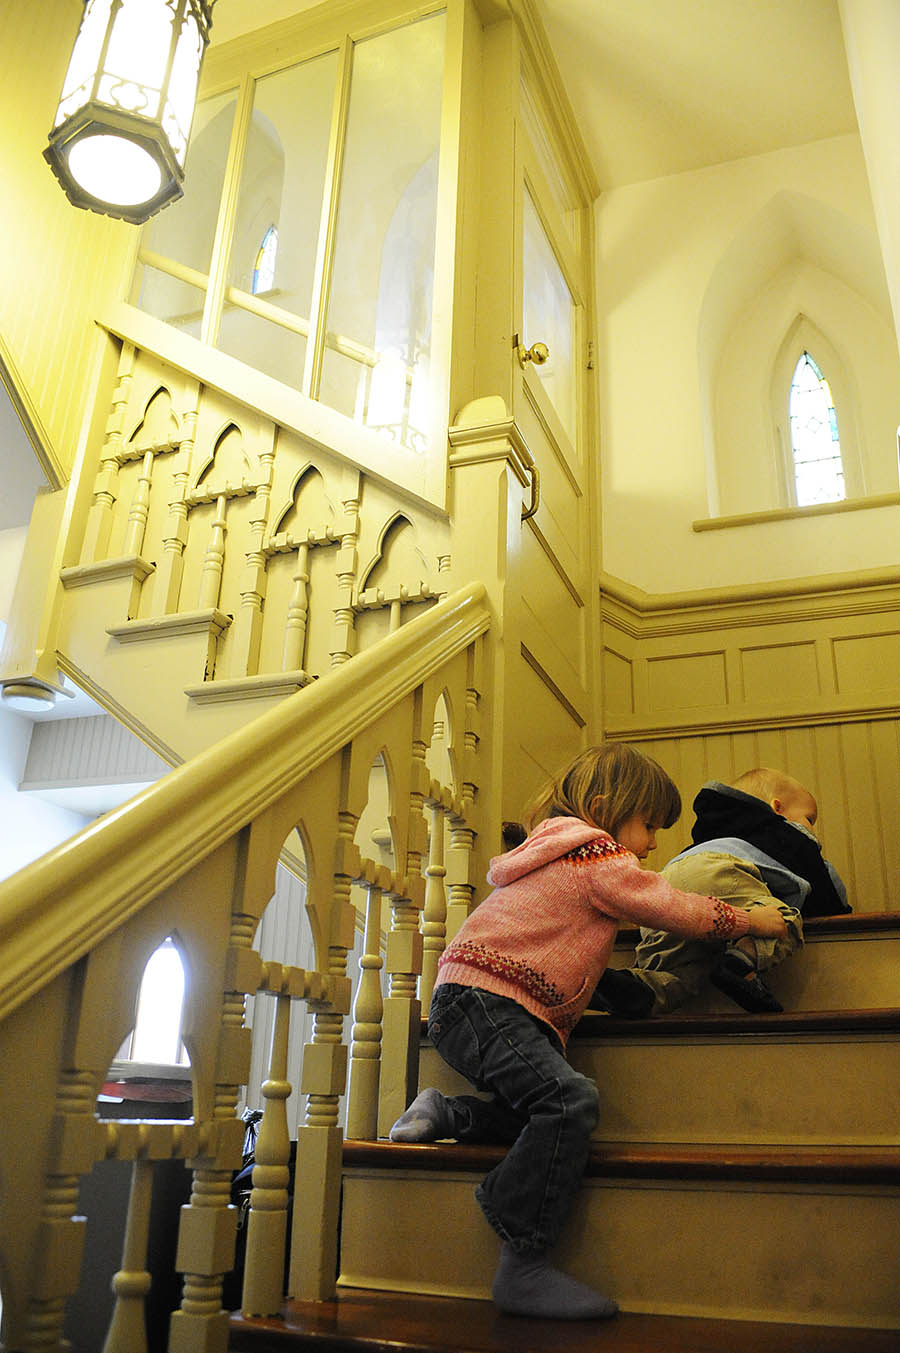 Ava-Marie and brother Dominic Ridenour shuffle down the stairs during Ash Wednesday services on Wednesday, Feb. 13, 2013, at St. Francis Catholic Church in Staunton. The holy day marks the beginning of Lent, the 40-day period of observance that leads up to Easter.